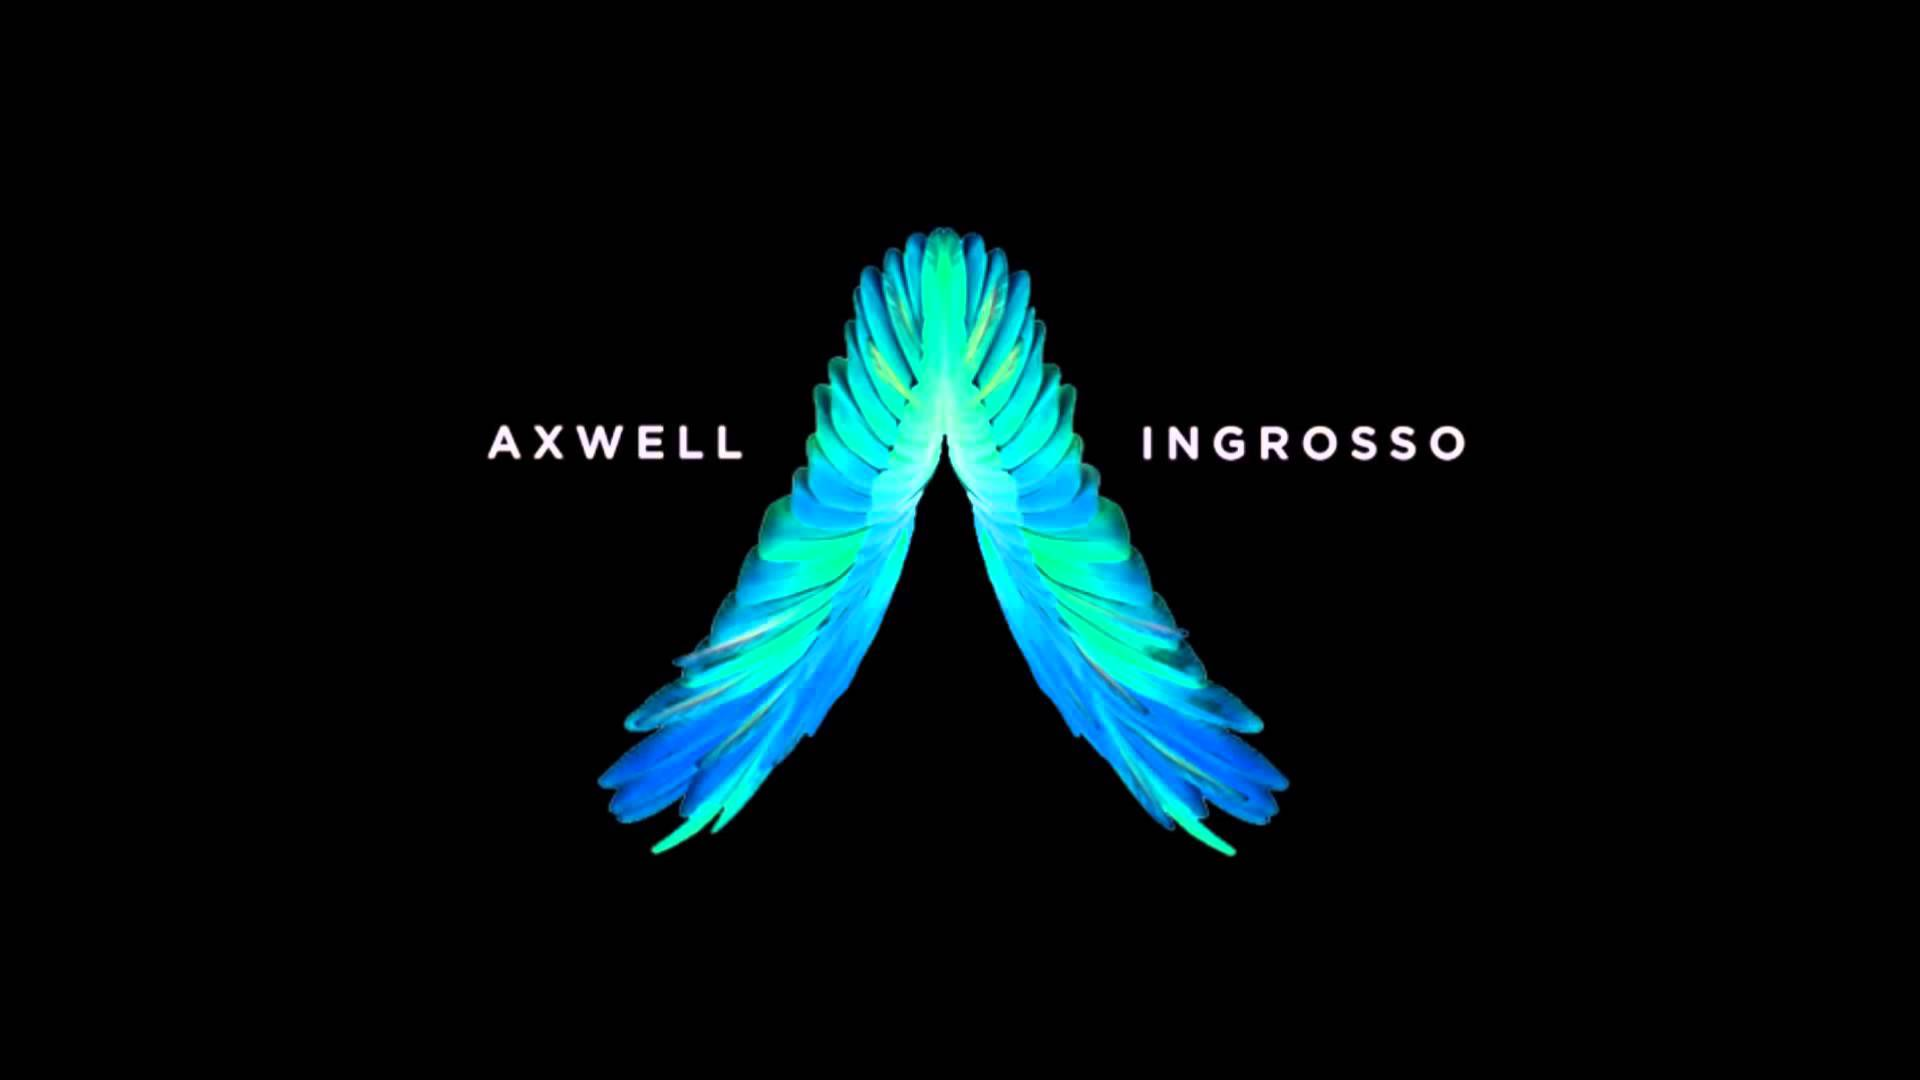 axwell ingrosso wallpapers wallpaper cave